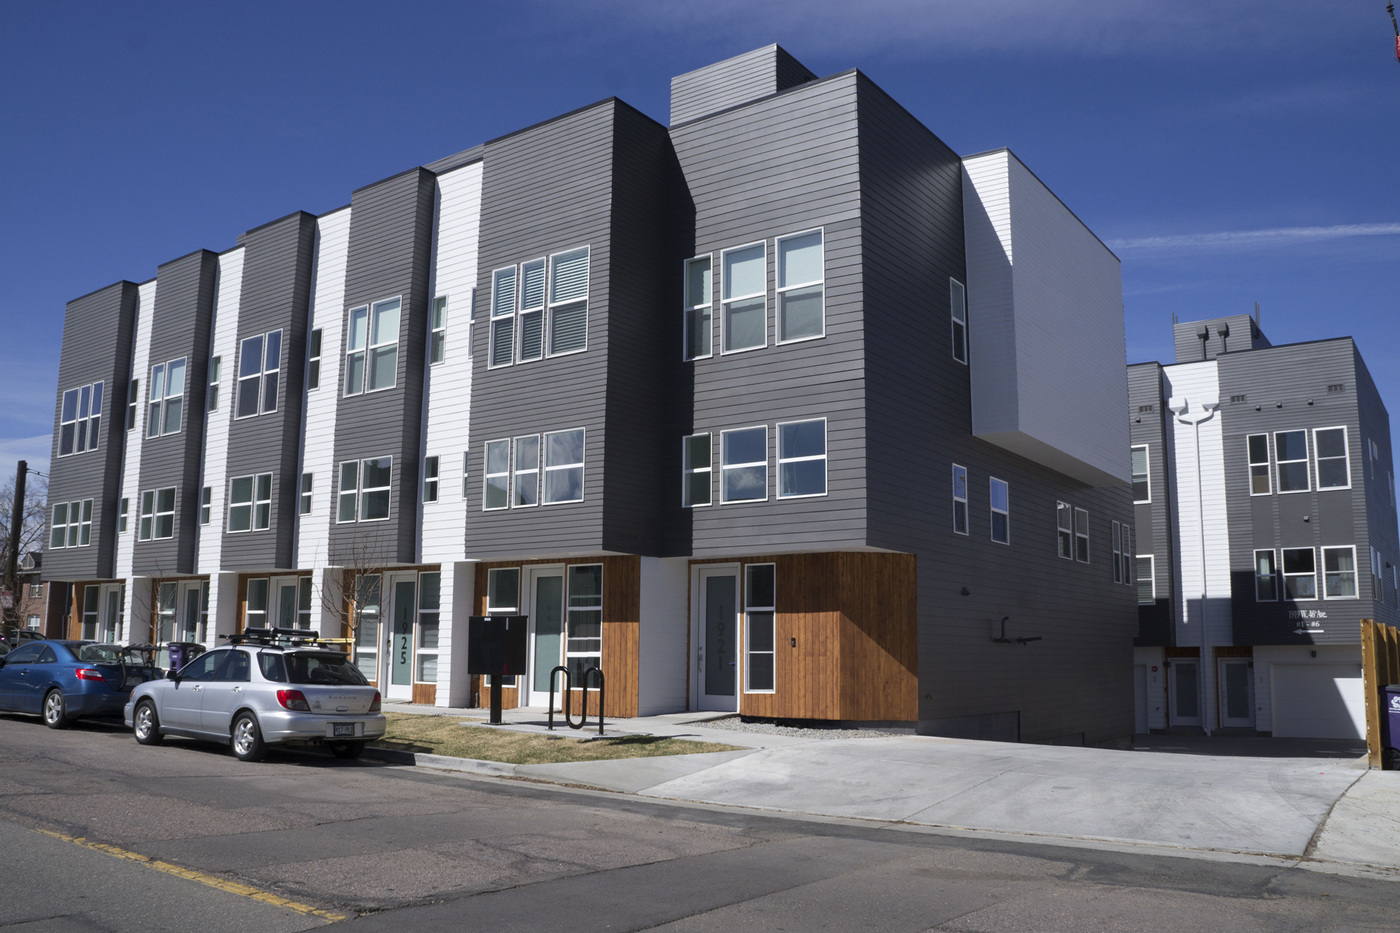 Derek Scott Price, AIA, LEED AP - 1919 W 46th Avenue Townhomes, Denver - ADC